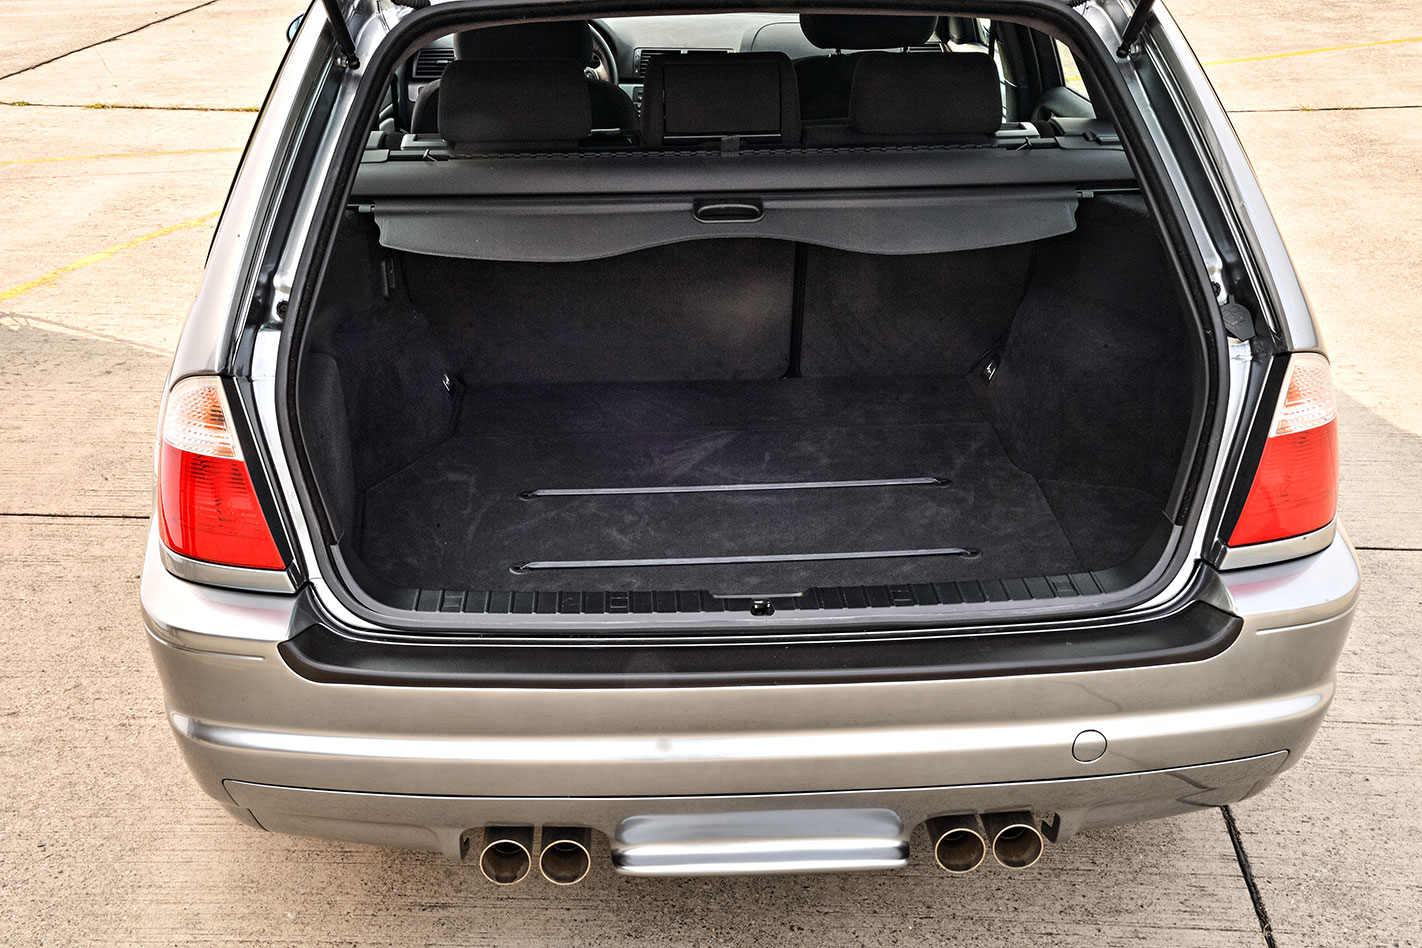 BMW E46 M3 wagon luggage